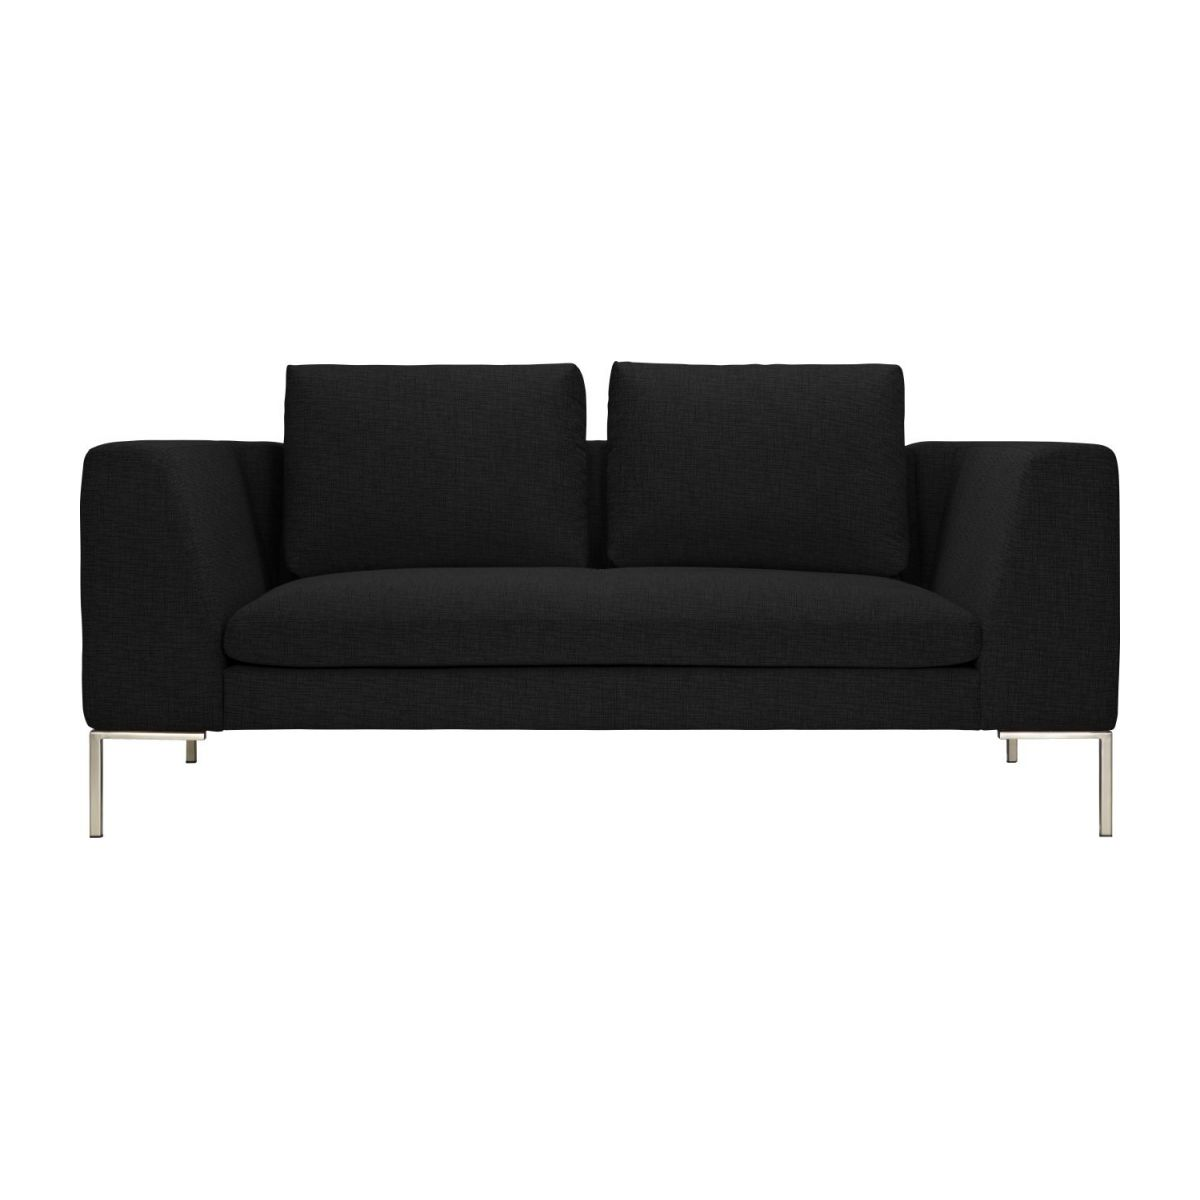 2 seater sofa in Ancio fabric, nero n°4